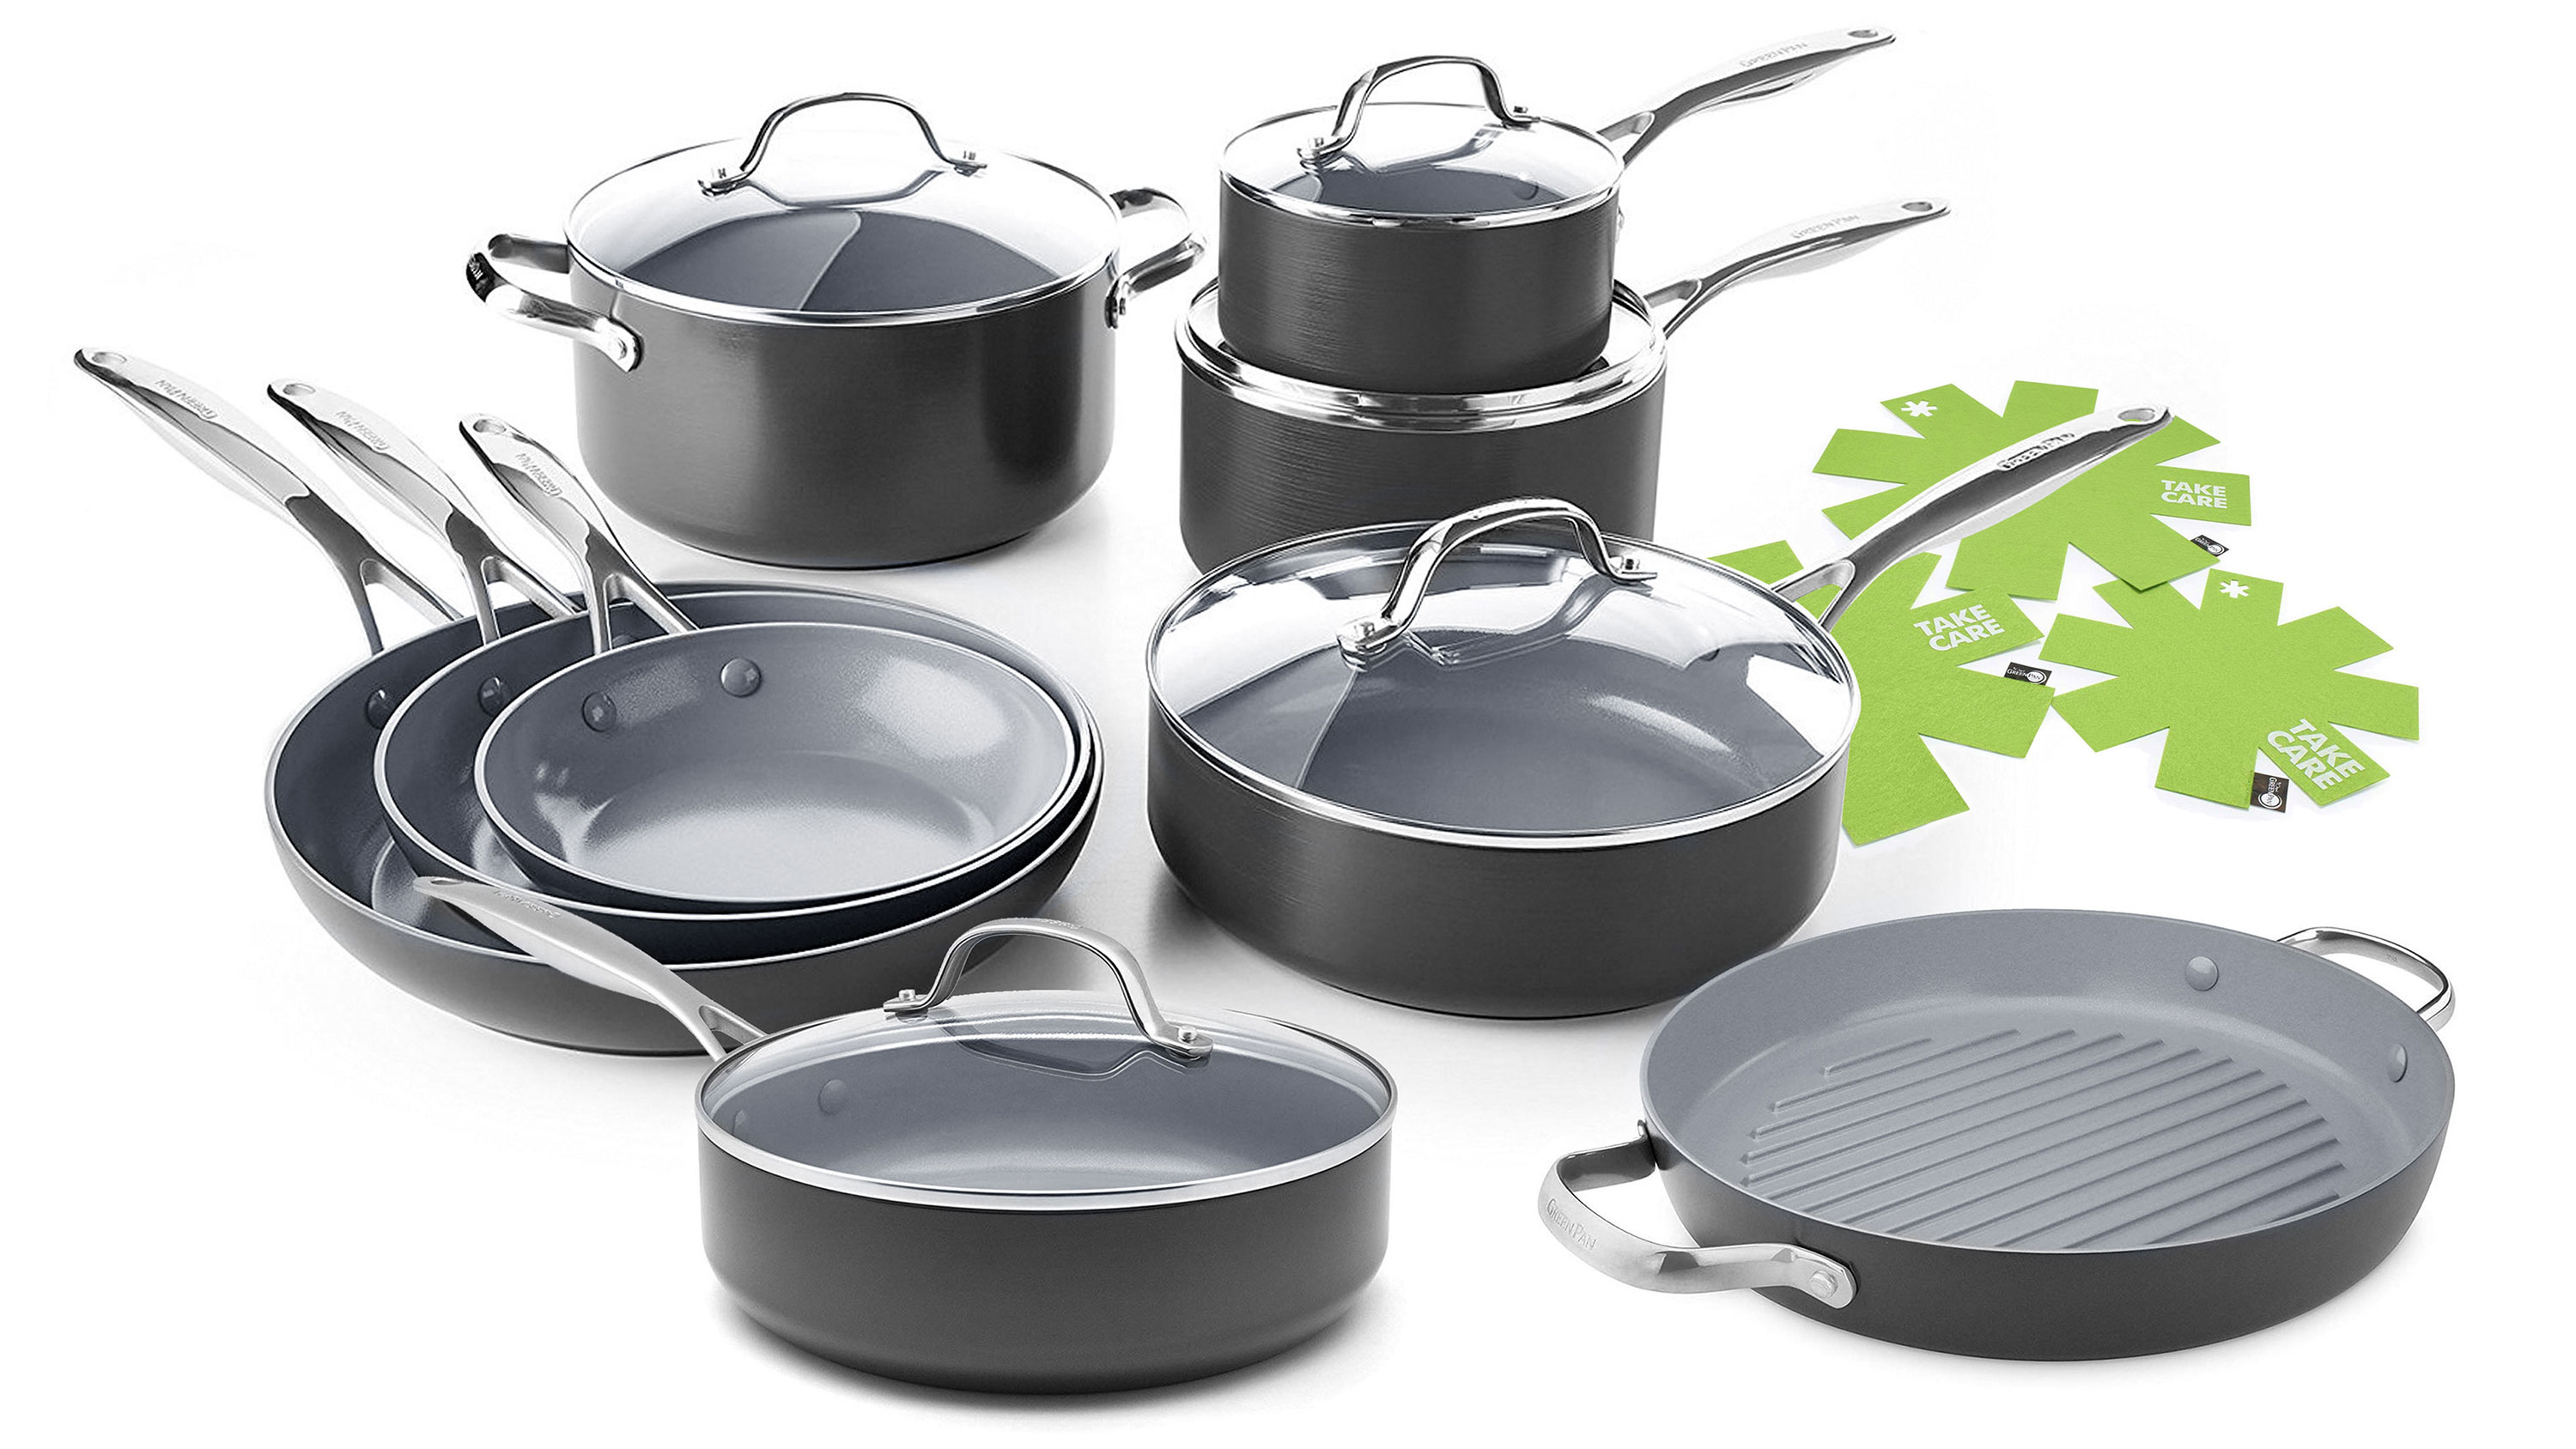 GreenPan Valencia Pro 14 Piece Nonstick Cookware Set